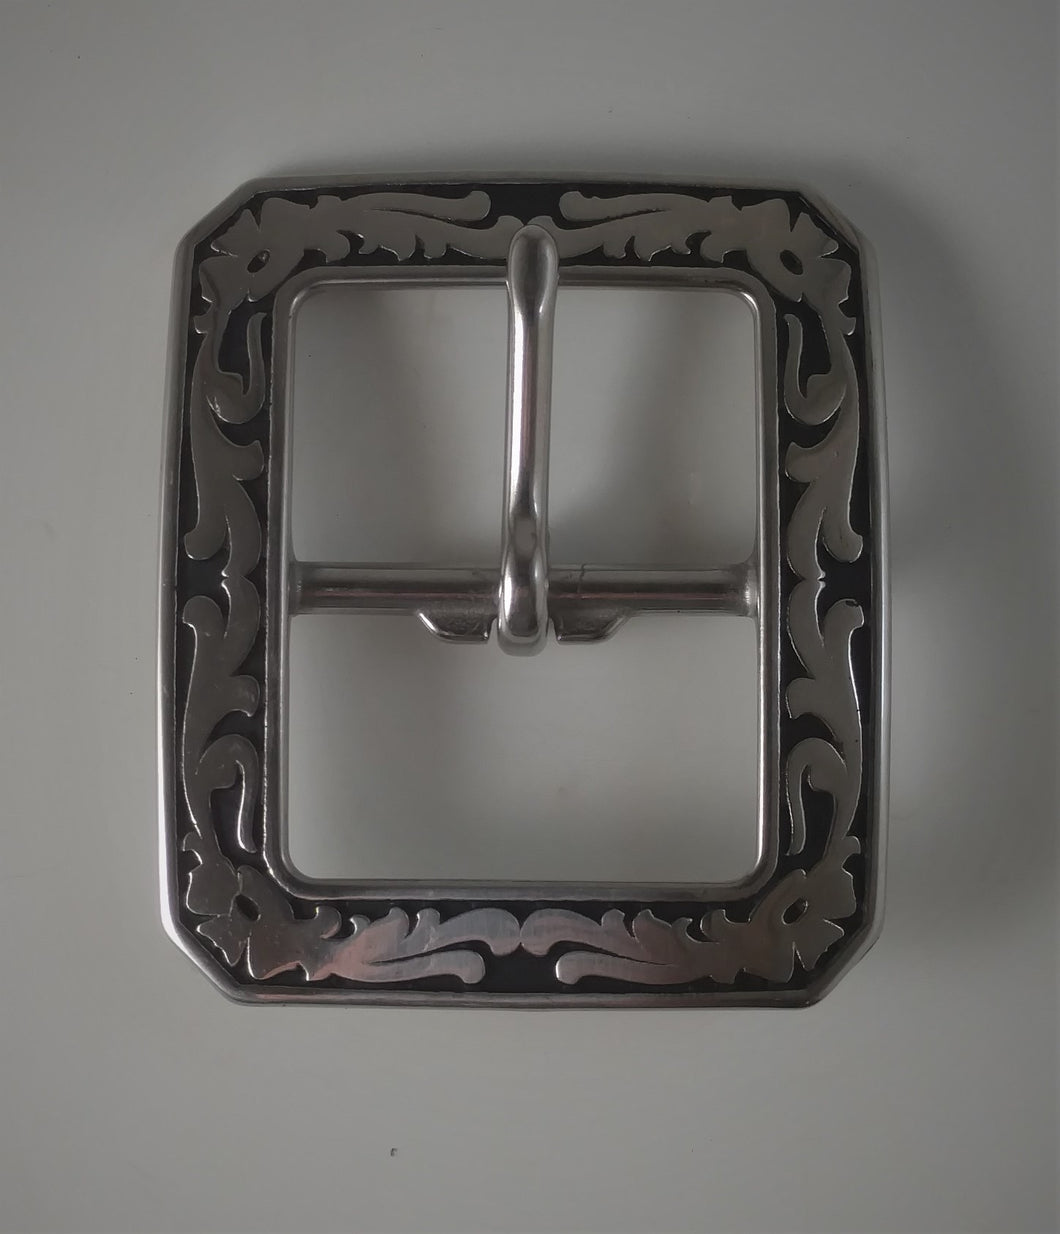 Black and Silver Center Bar Buckle